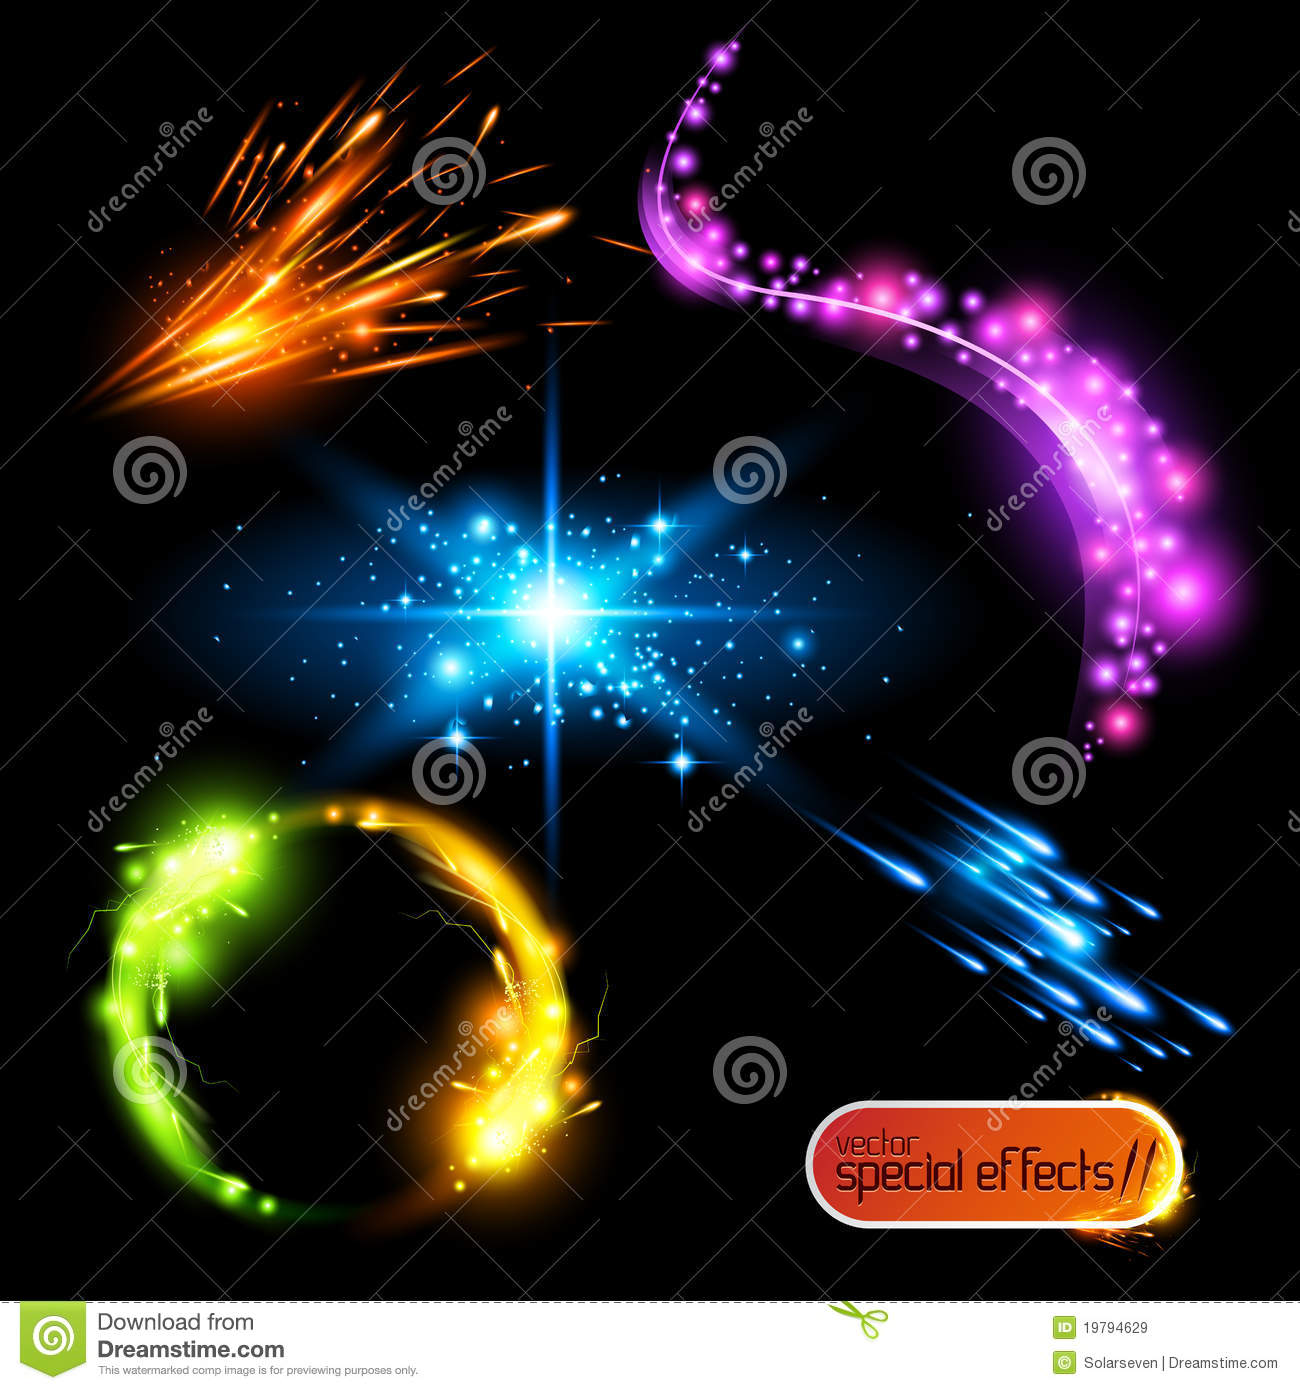 Vector Special Effects 2